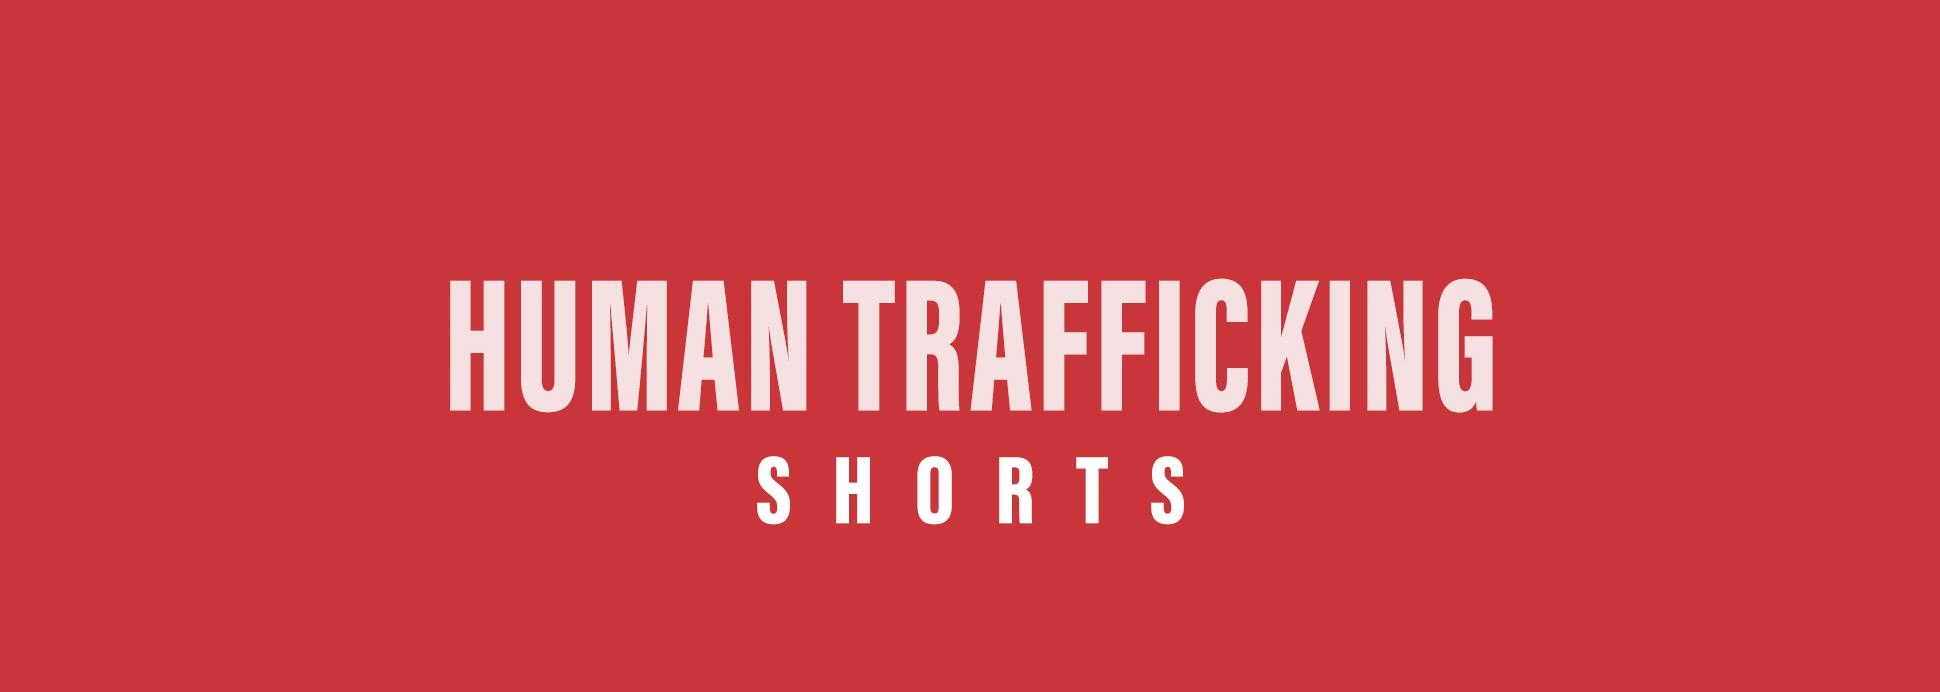 Shorts: Human Trafficking